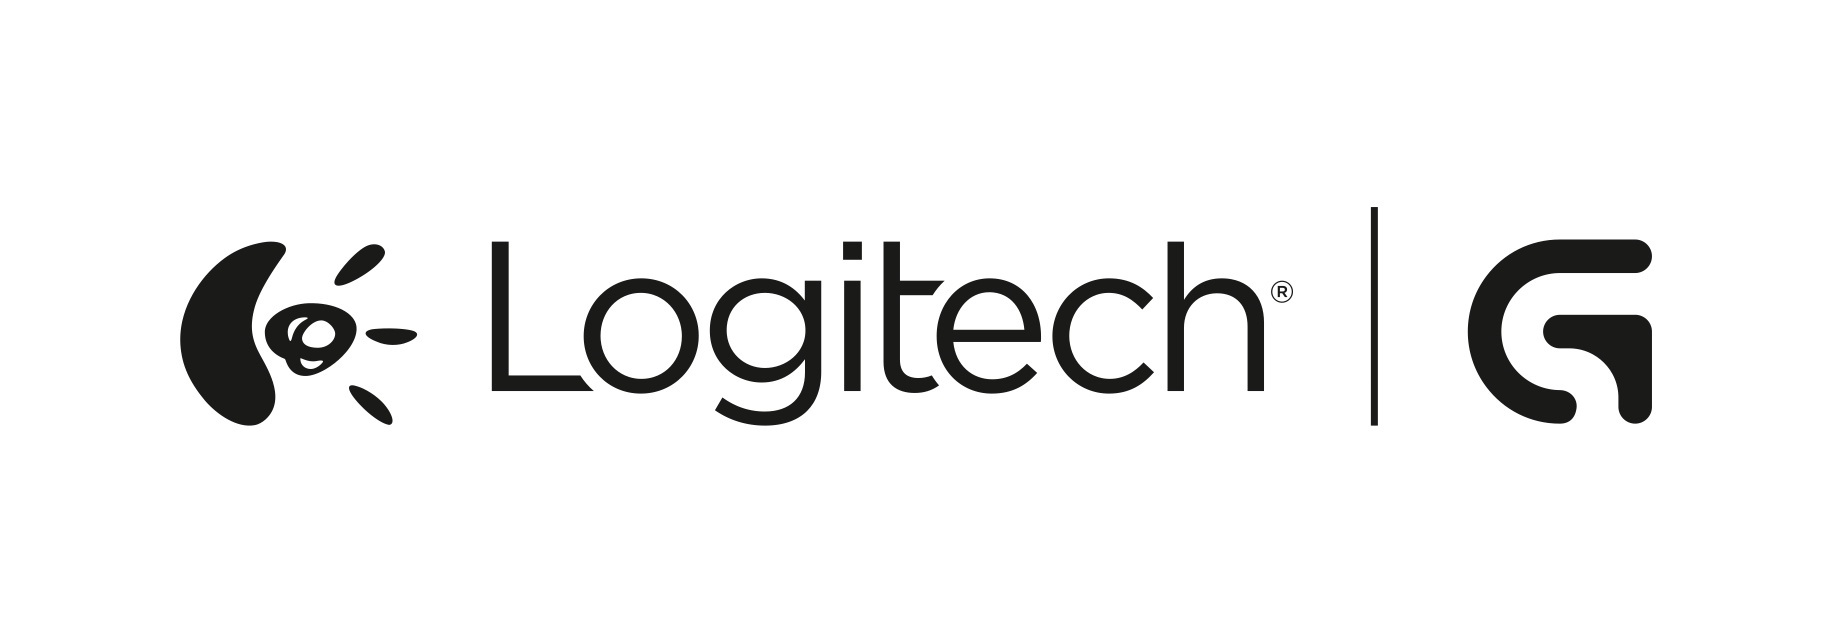 Logitech Launches First Of Its Kind G Tunable Gaming Mouse Wiring Diagram For Webcam Download Full Size